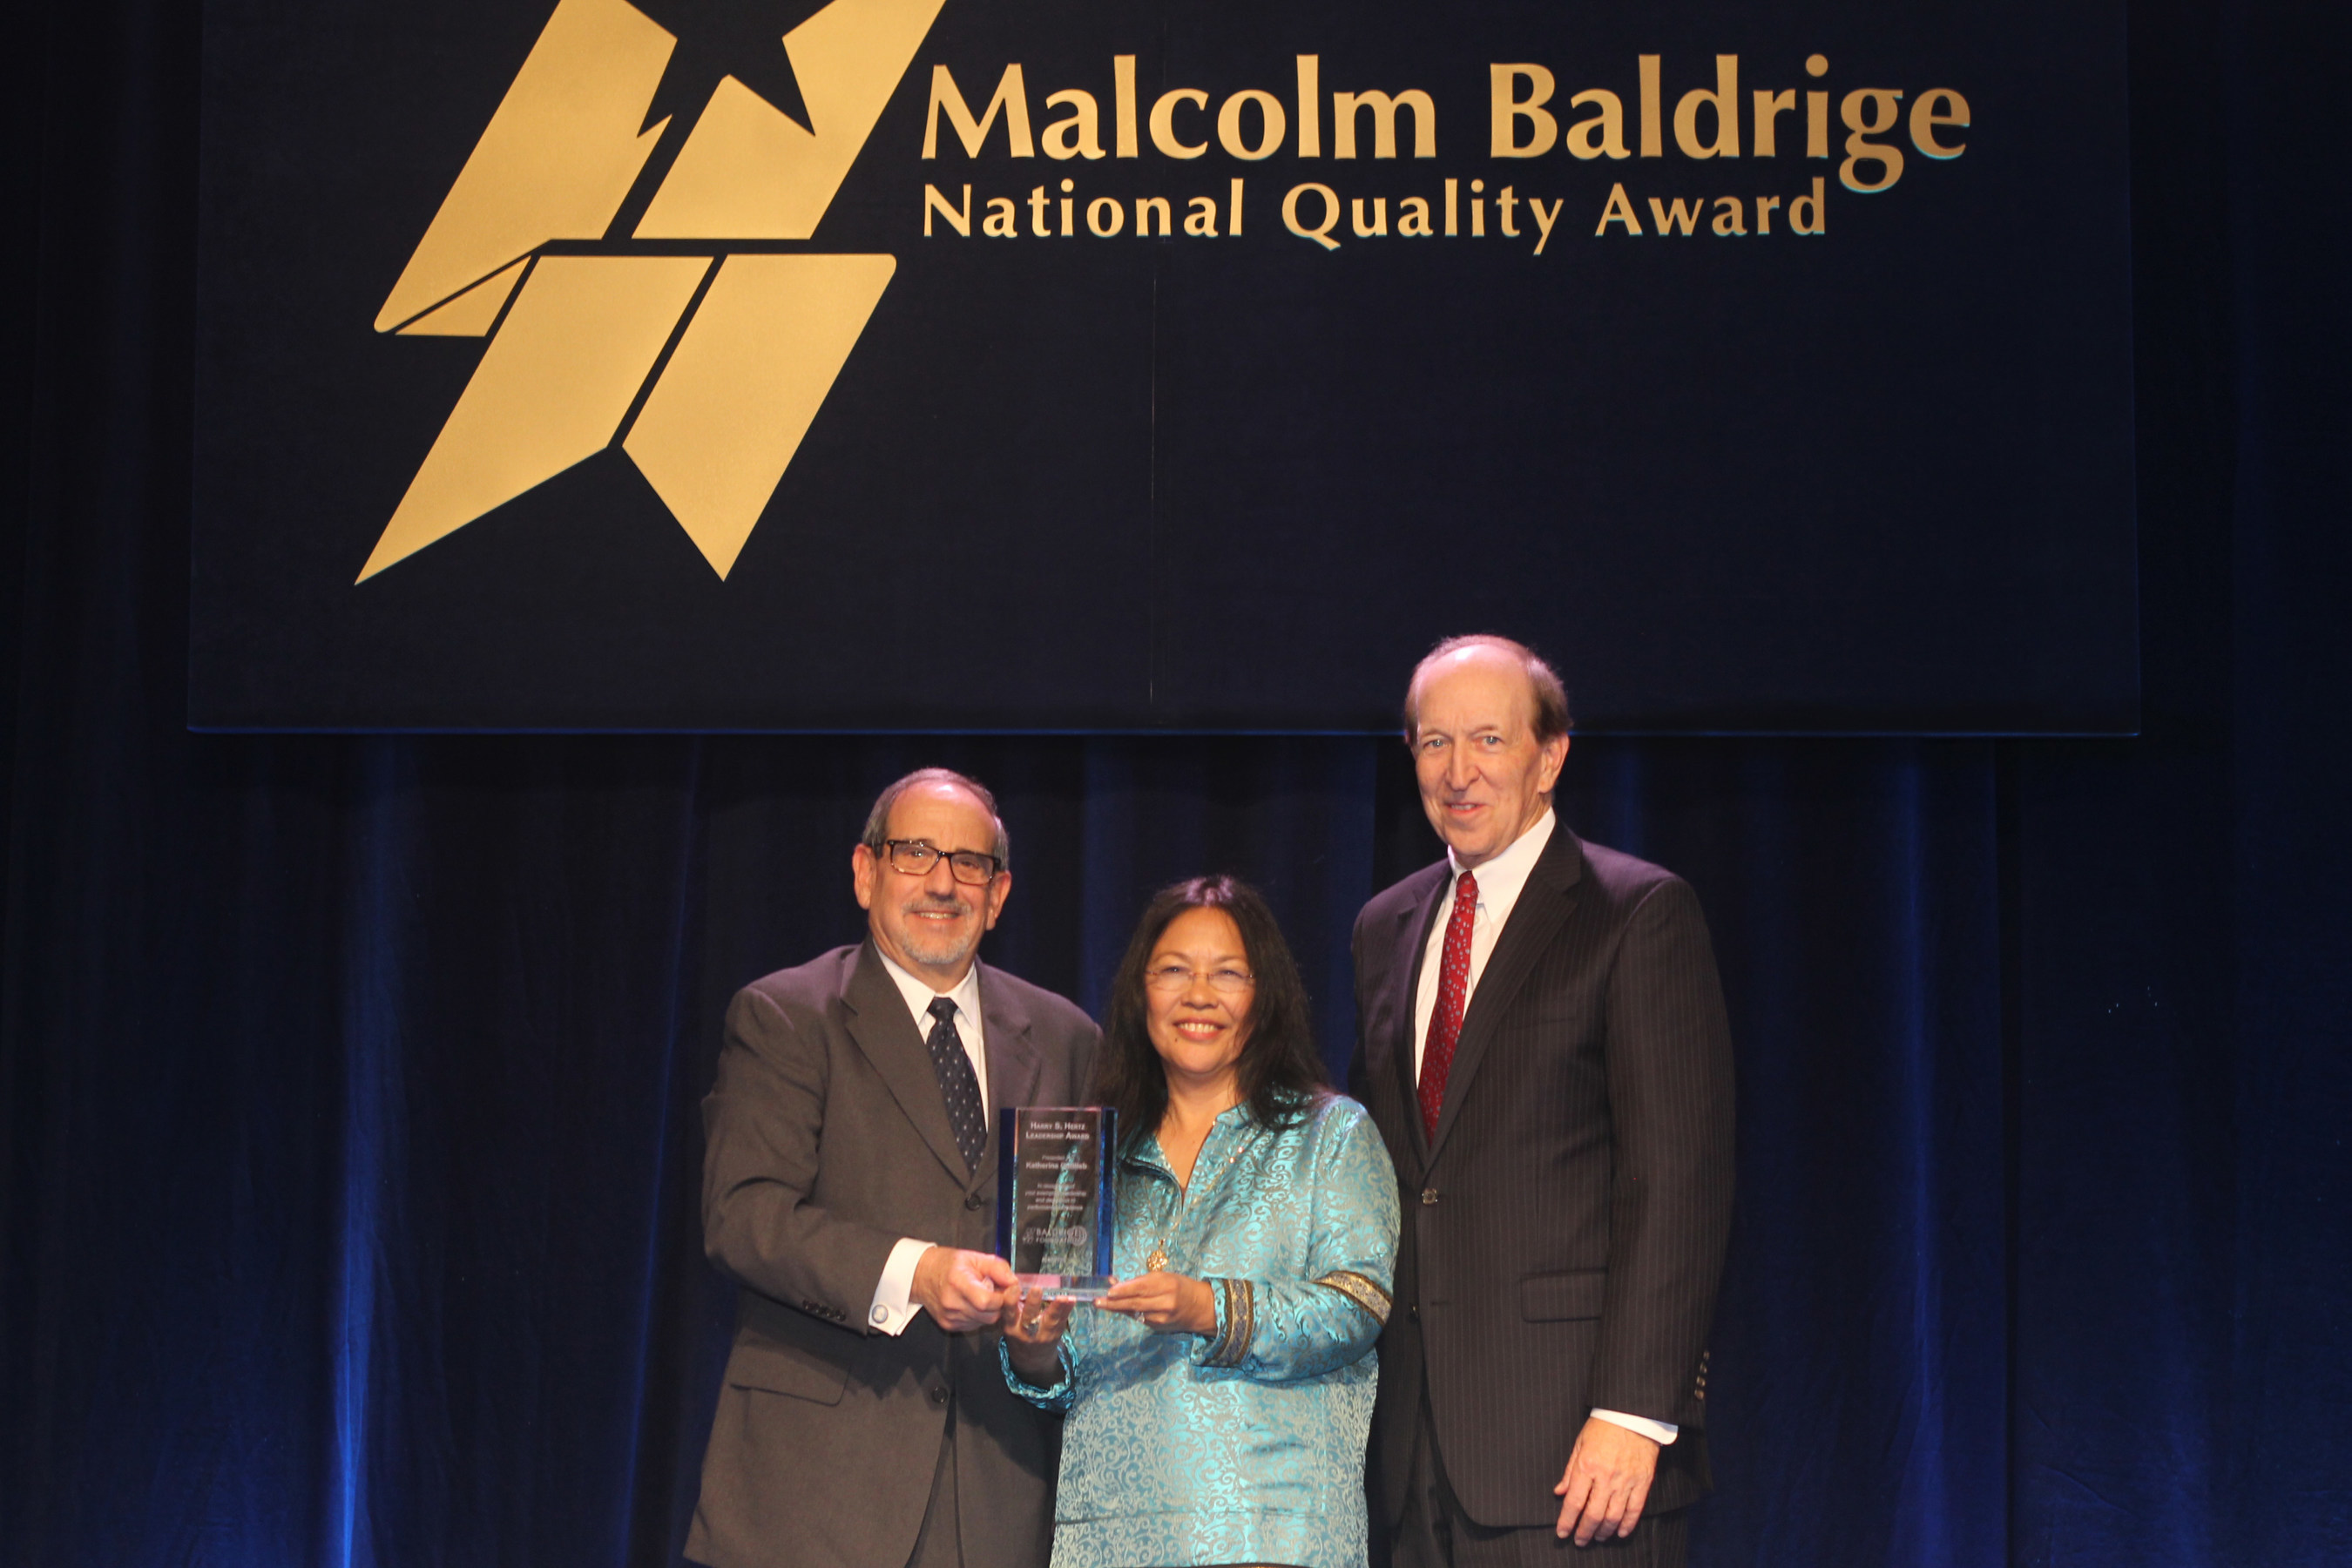 (Left-Right) 2013 HSHLA Recipient and Baldrige Performance Excellence Program Director Emeritus Harry S. Hertz, 2015 HSHLA Recipient and Southcentral Foundation President/CEO Dr. Katherine Gottlieb and Baldrige Foundation Chair Dr. P. George Benson